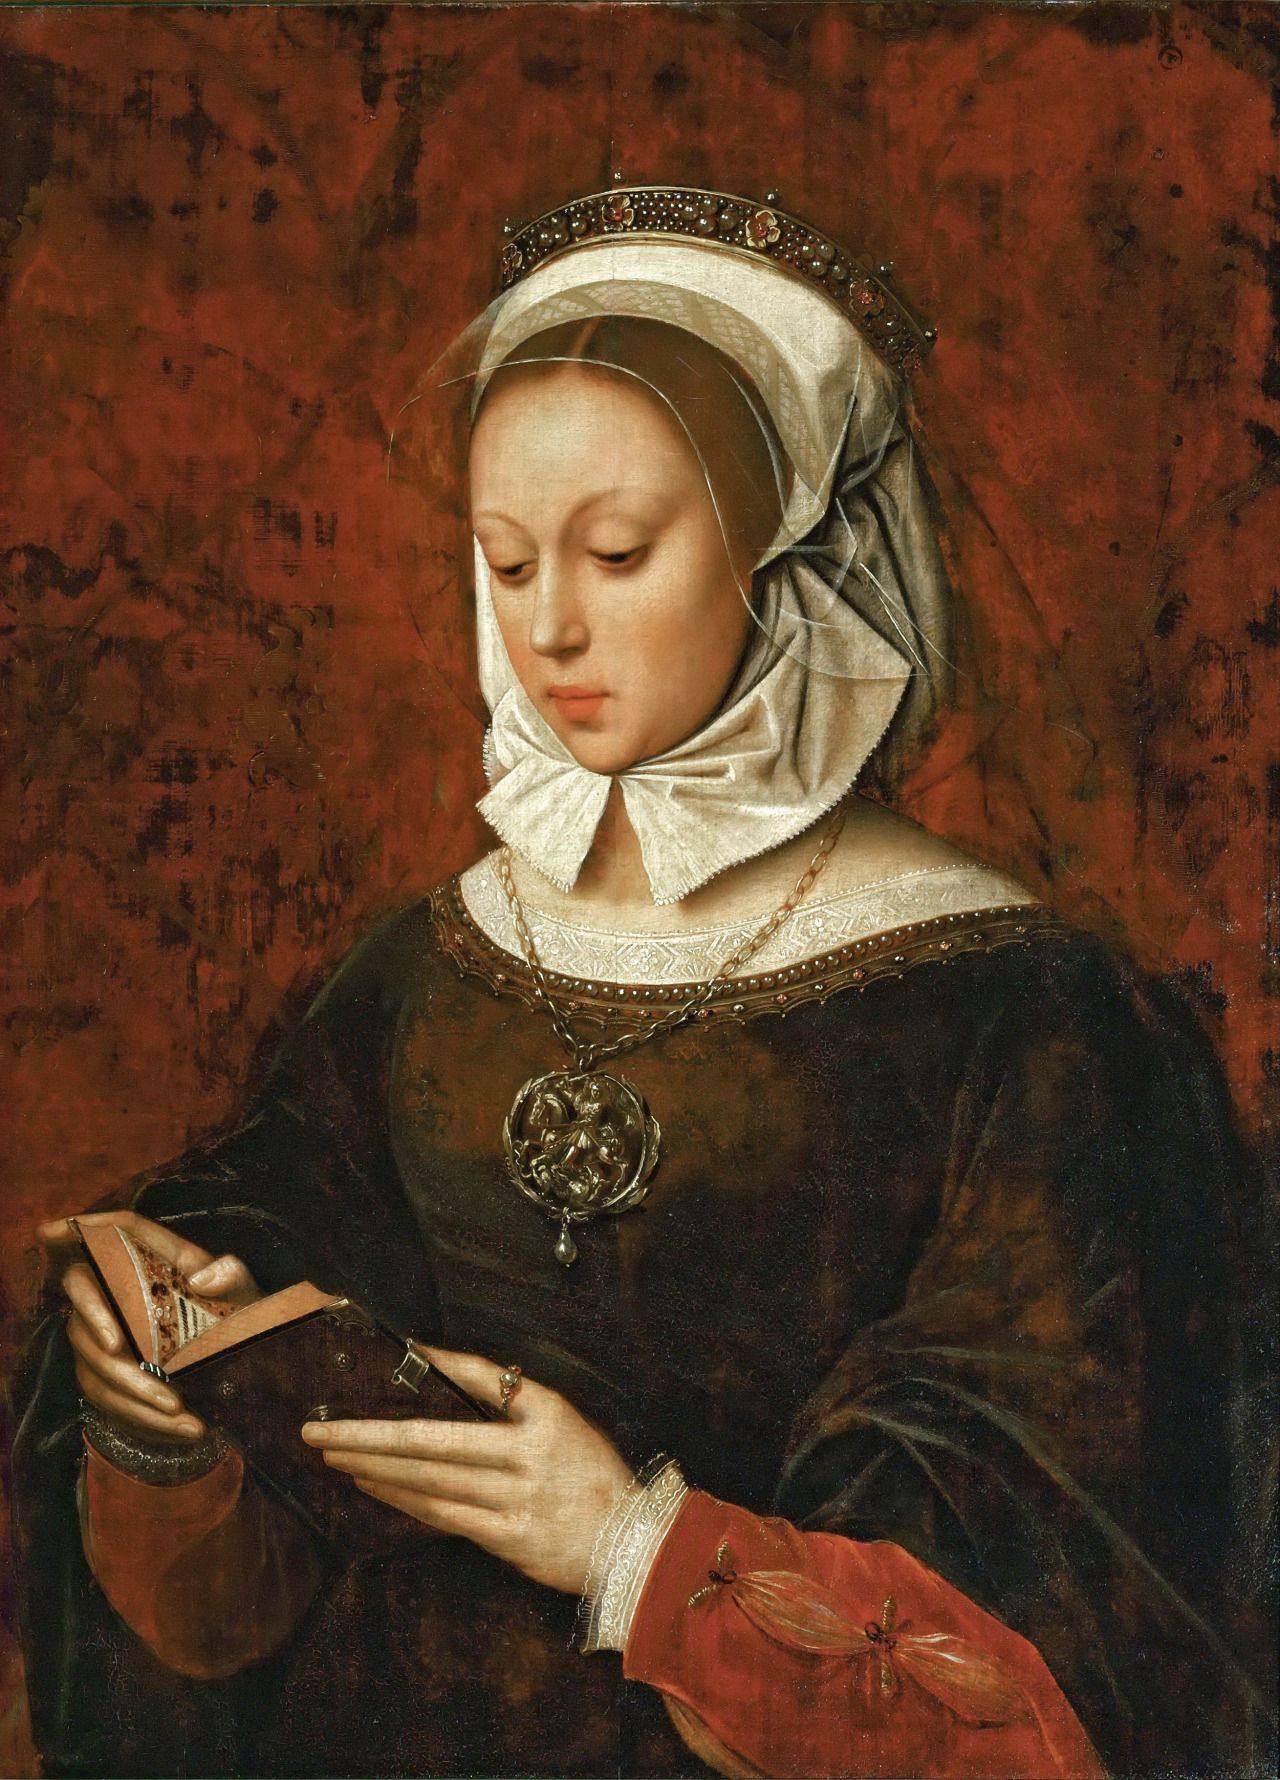 Young Woman in Orison Reading a Book of Hours by Ambrosius